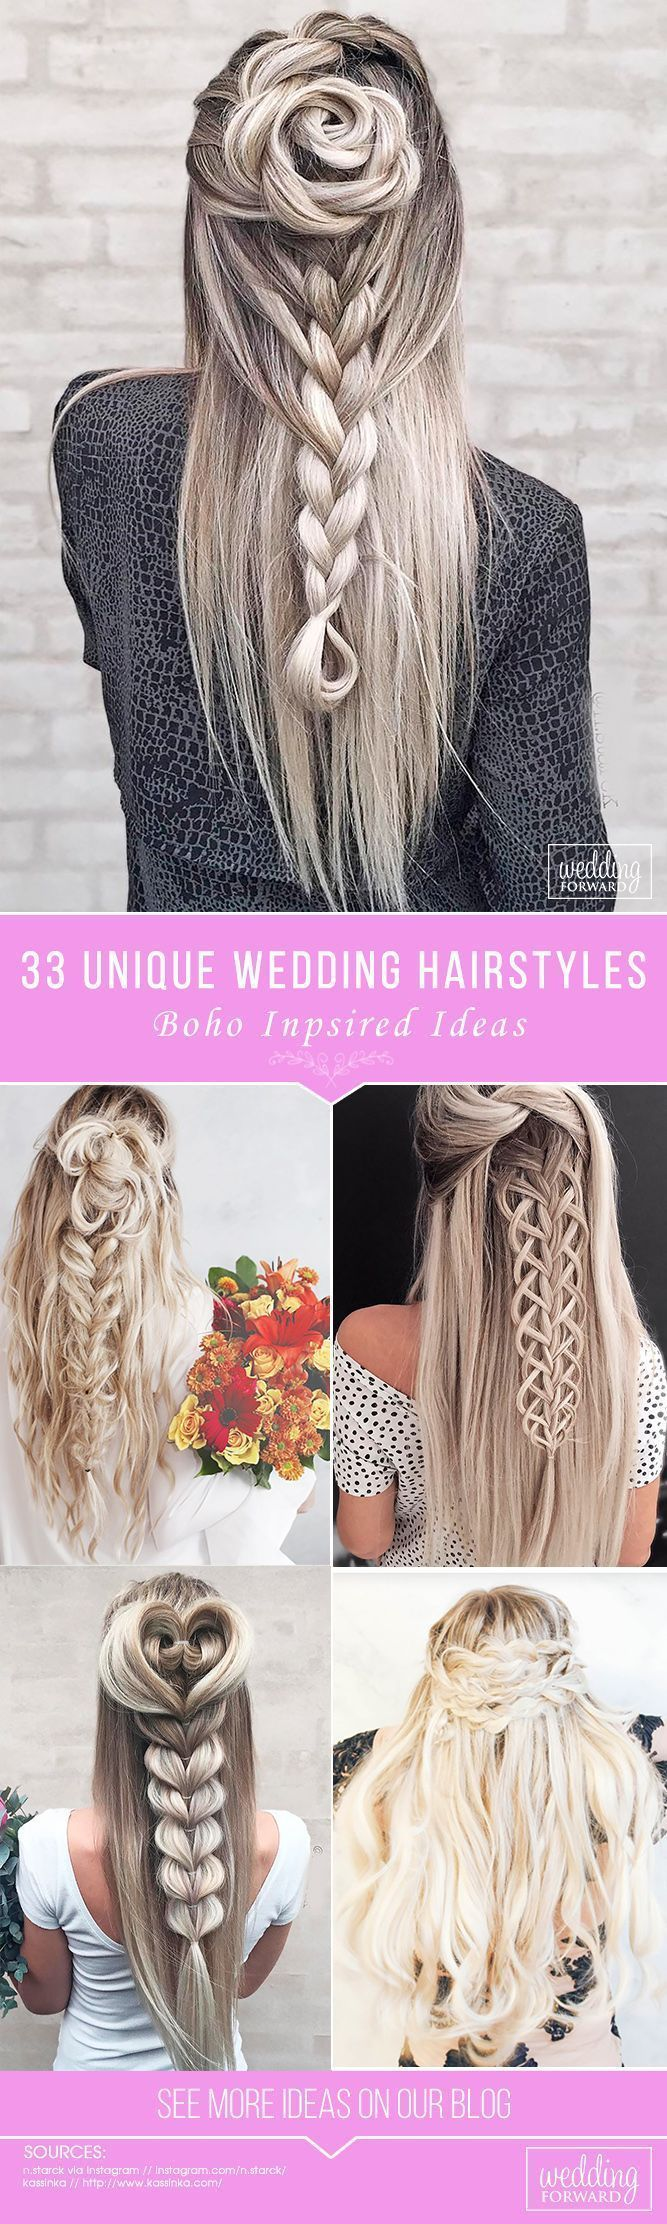 33 Creative & Unique Wedding Hairstyles ❤️ From creative hairstyles with romantic, loose curls to formal wedding updos, these unique wedding hairstyles would work great either for your ceremony or for your reception. See more: